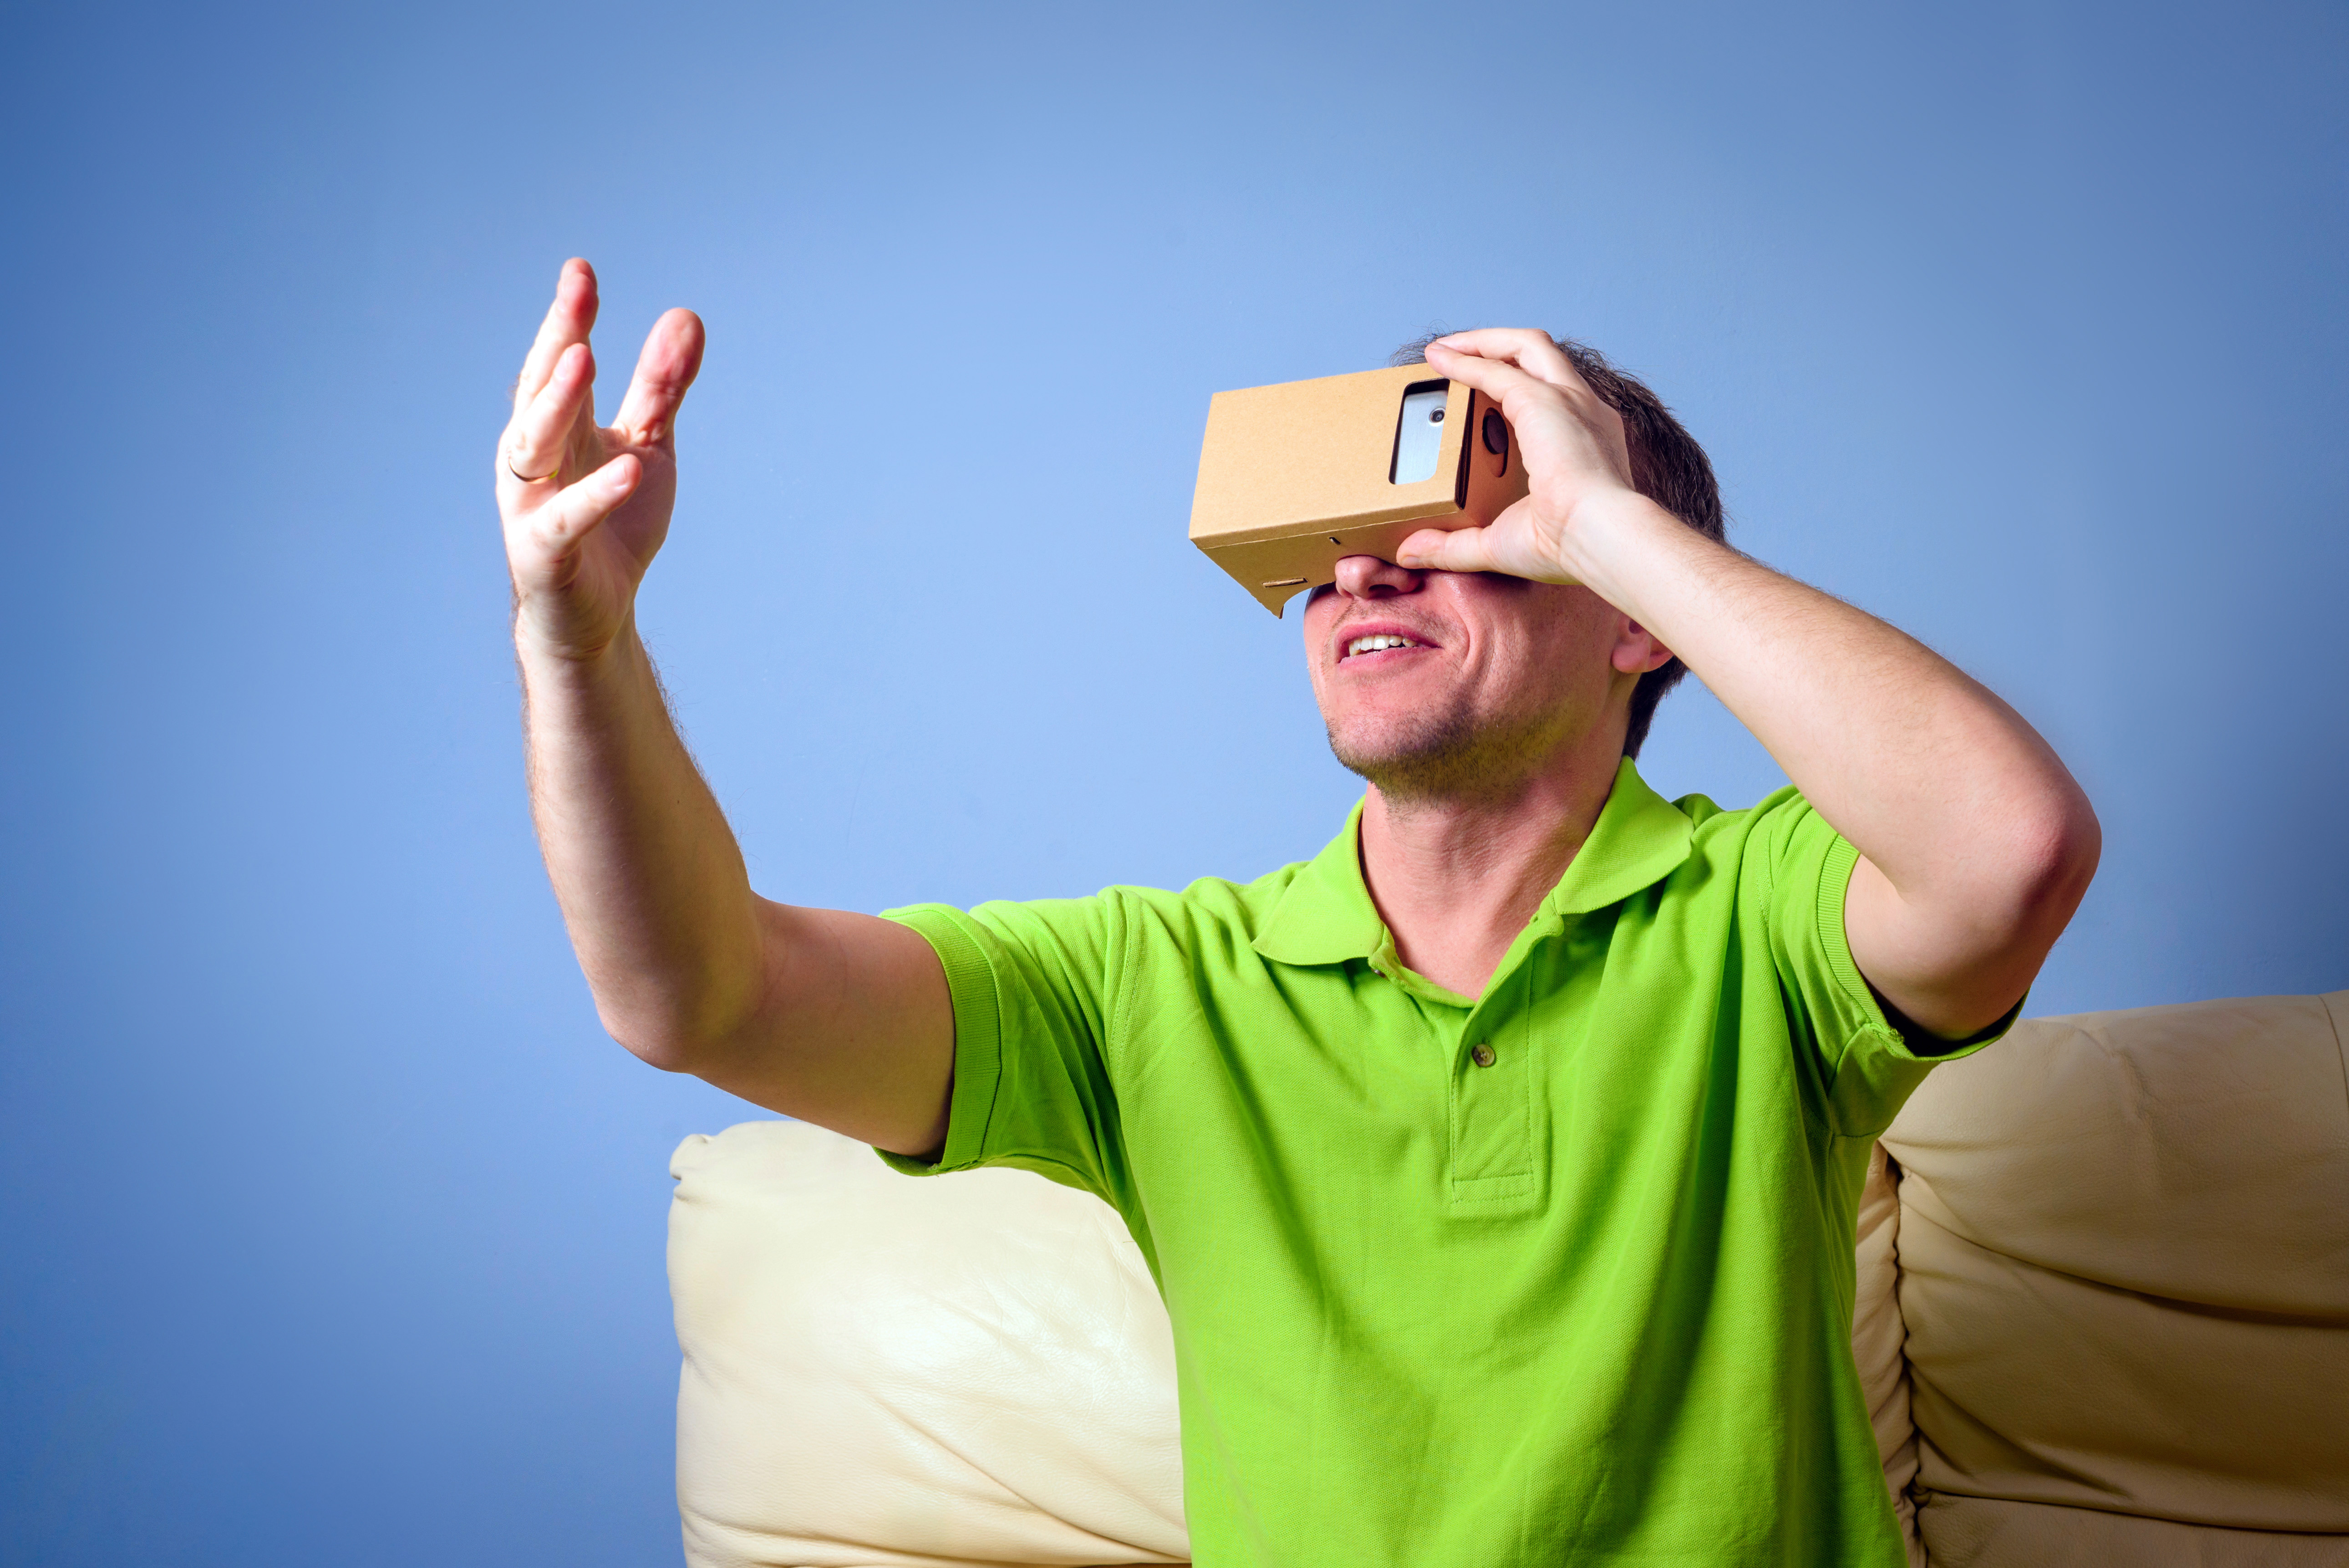 Concept of virtual reality glasses